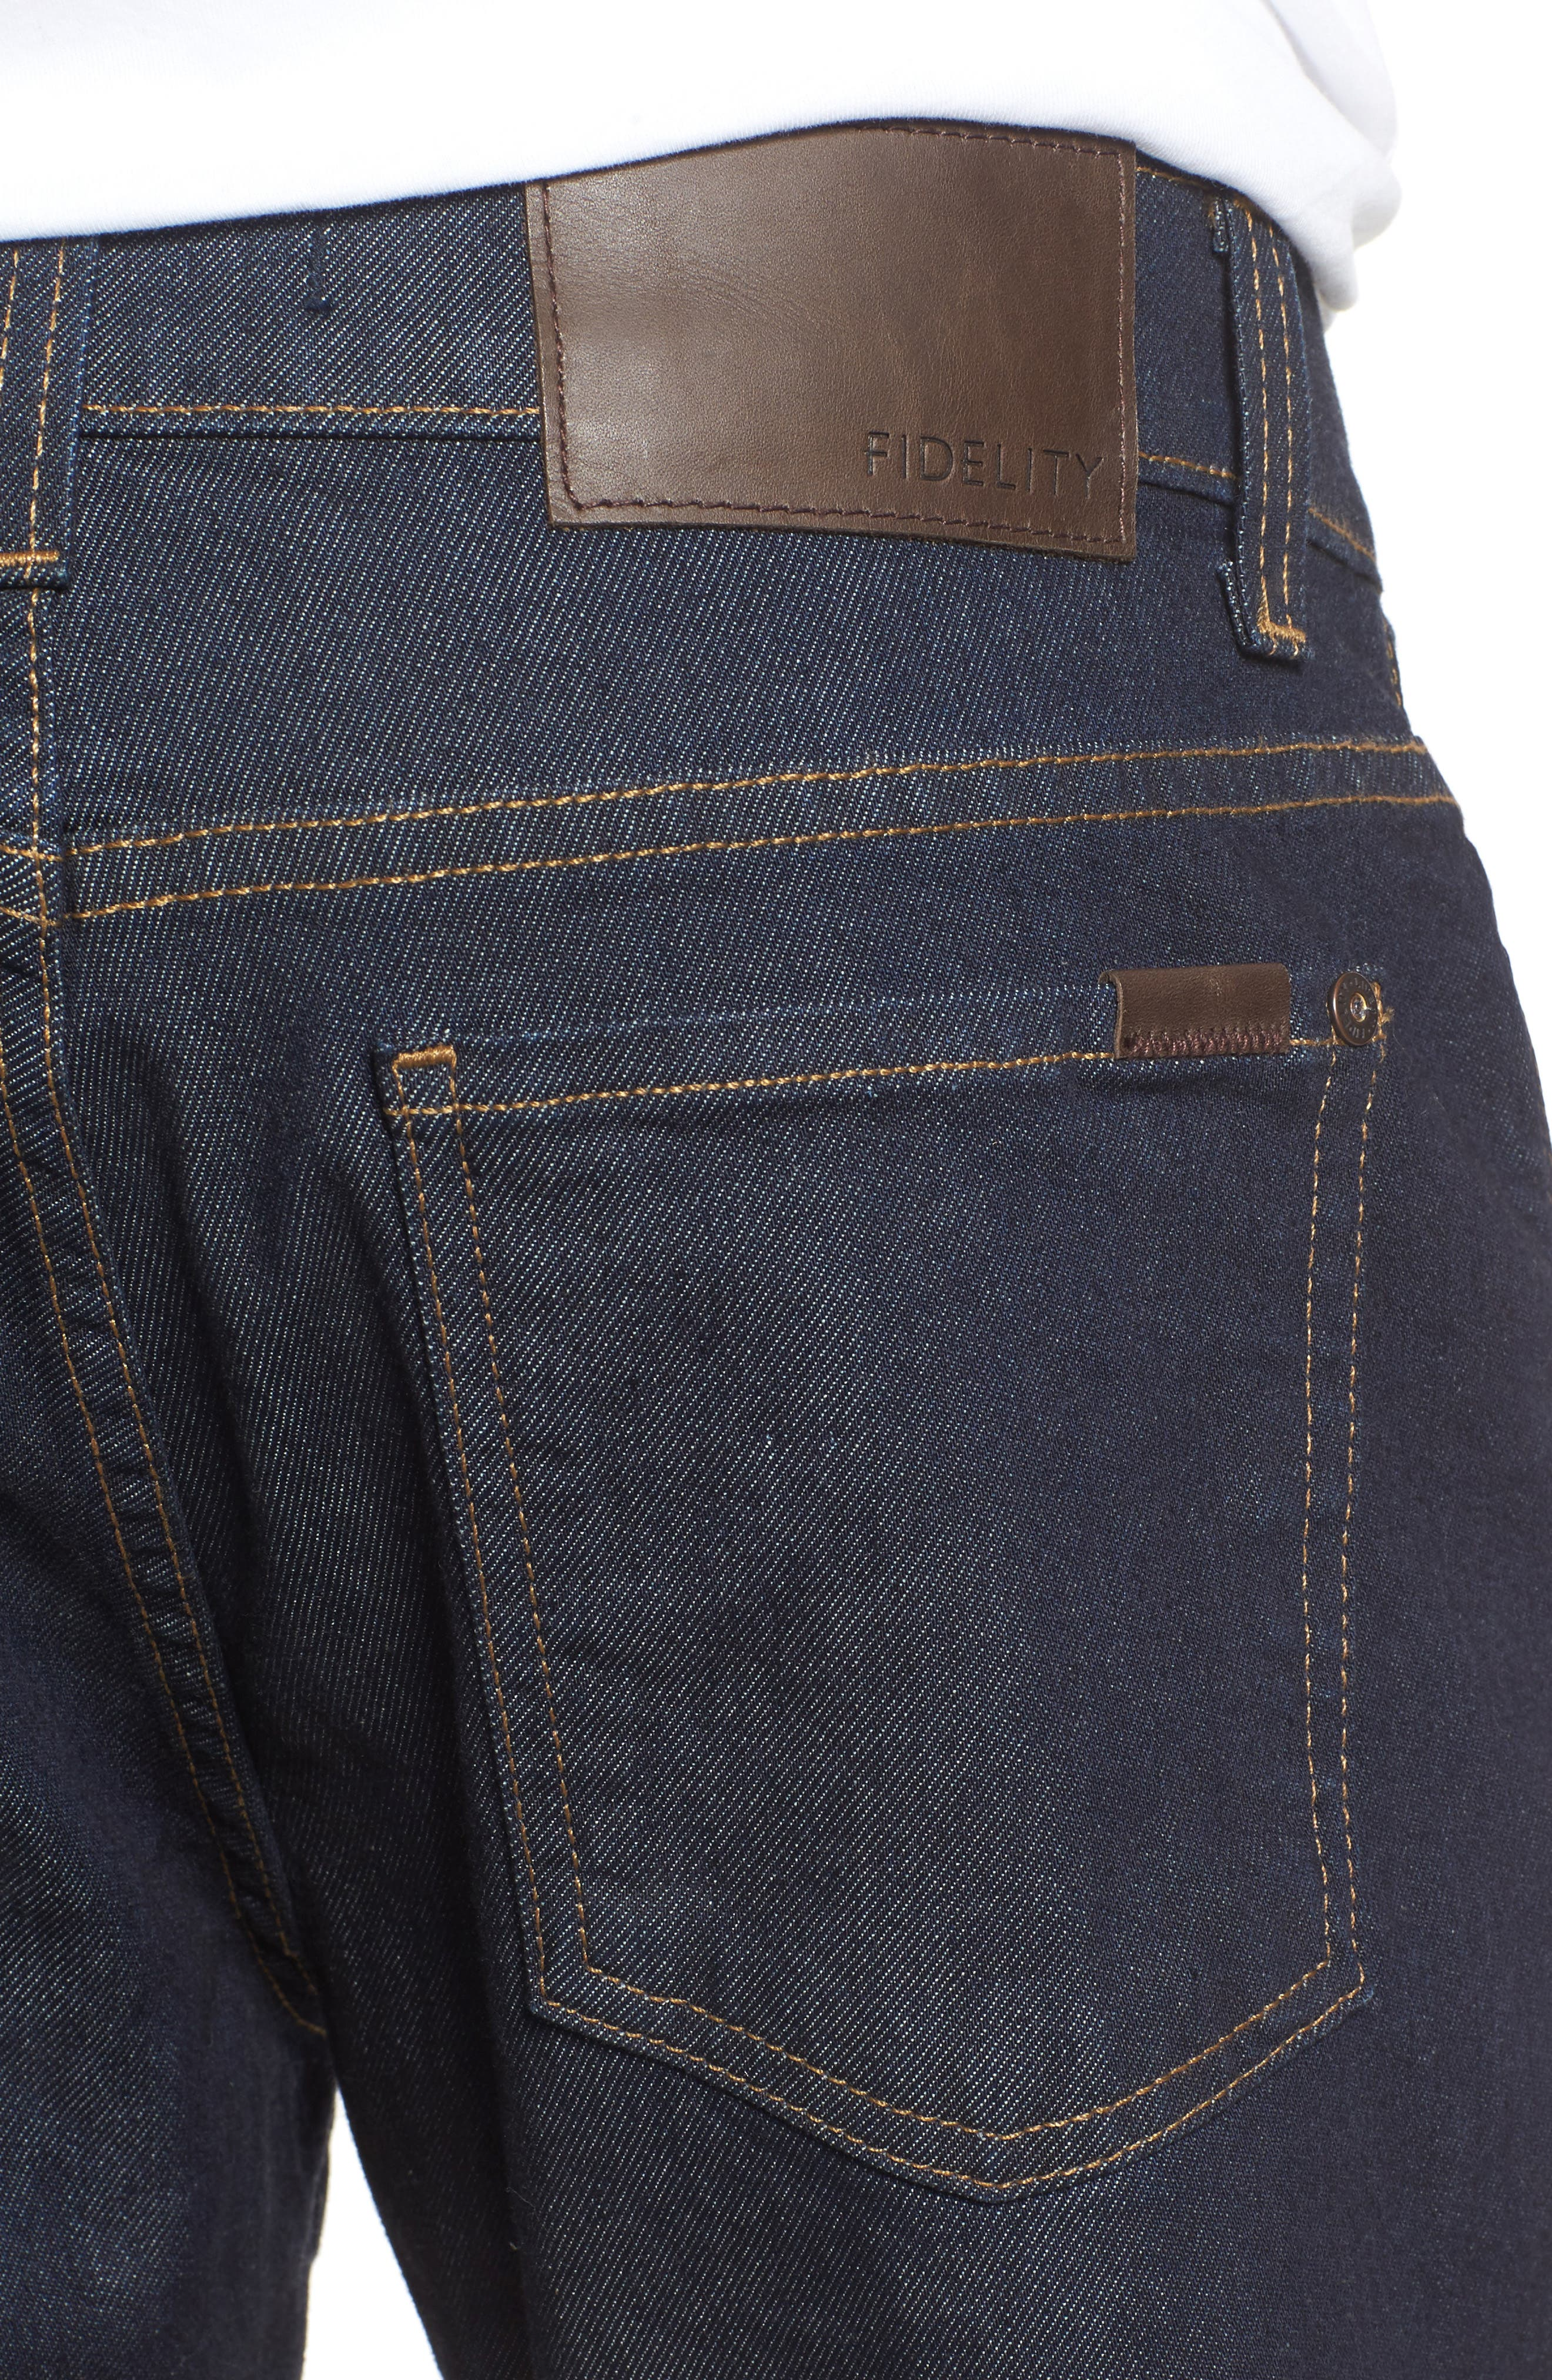 Jimmy Slim Straight Leg Jeans,                             Alternate thumbnail 4, color,                             400